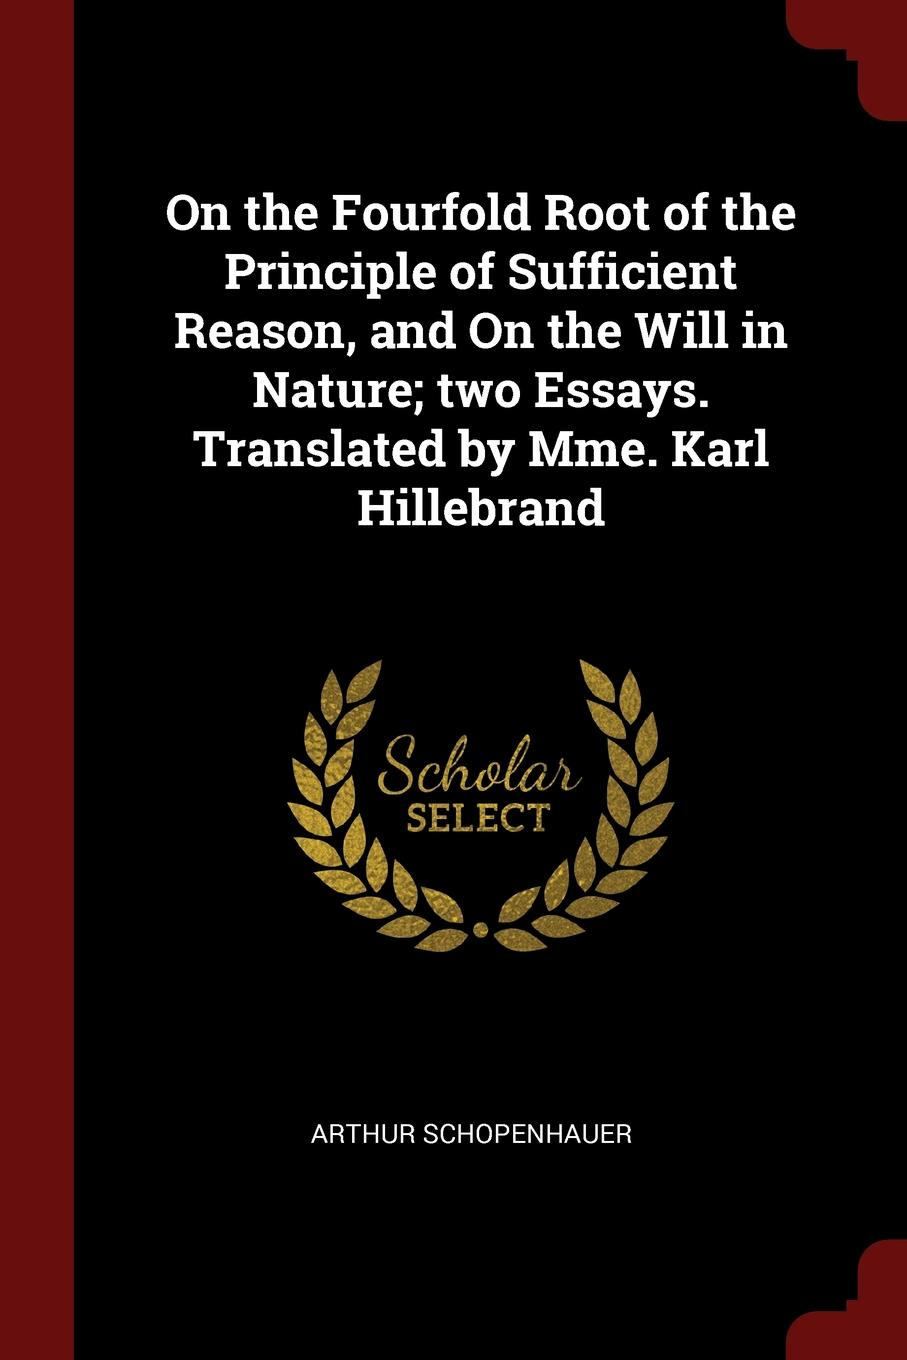 Артур Шопенгауэр On the Fourfold Root of the Principle of Sufficient Reason, and On the Will in Nature; two Essays. Translated by Mme. Karl Hillebrand артур шопенгауэр the world as will and idea vol 2 of 3